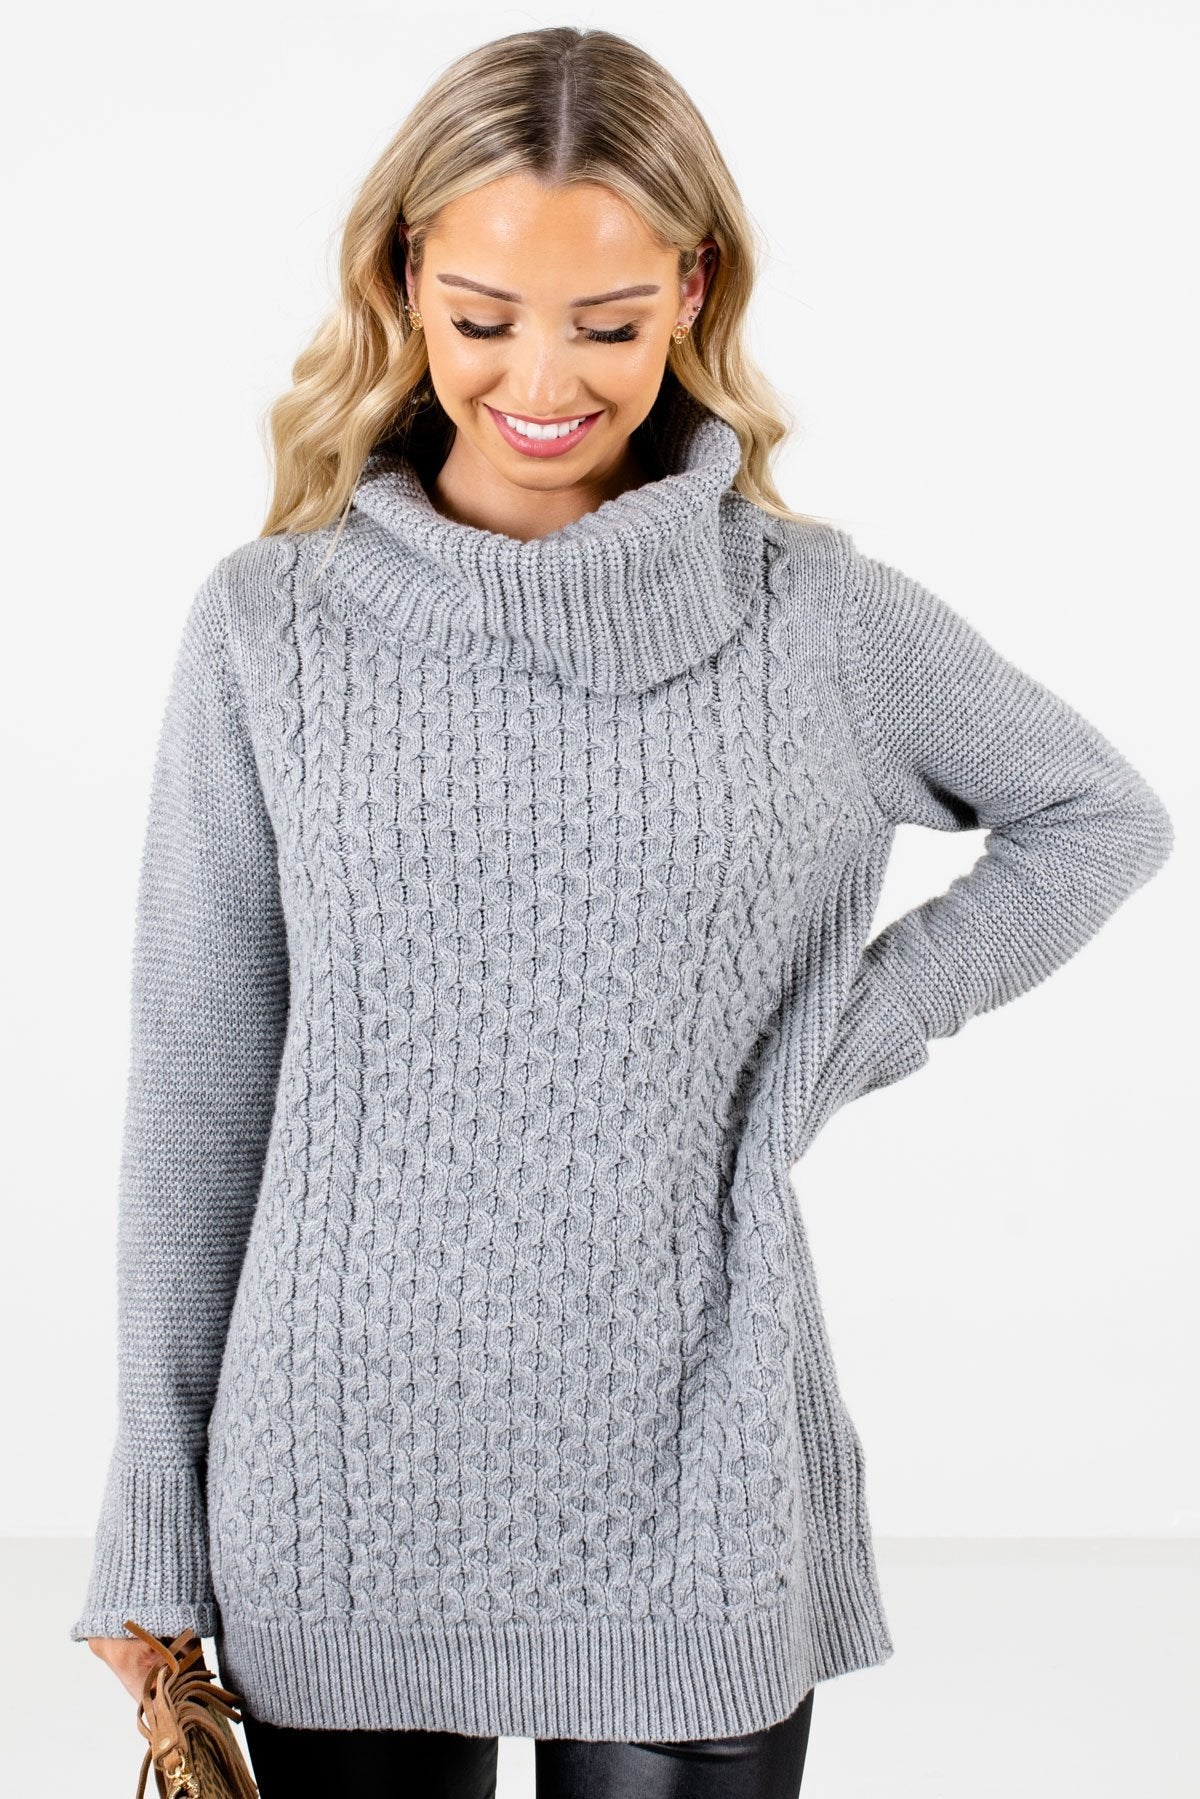 Gray High-Quality Knit Material Boutique Sweaters for Women